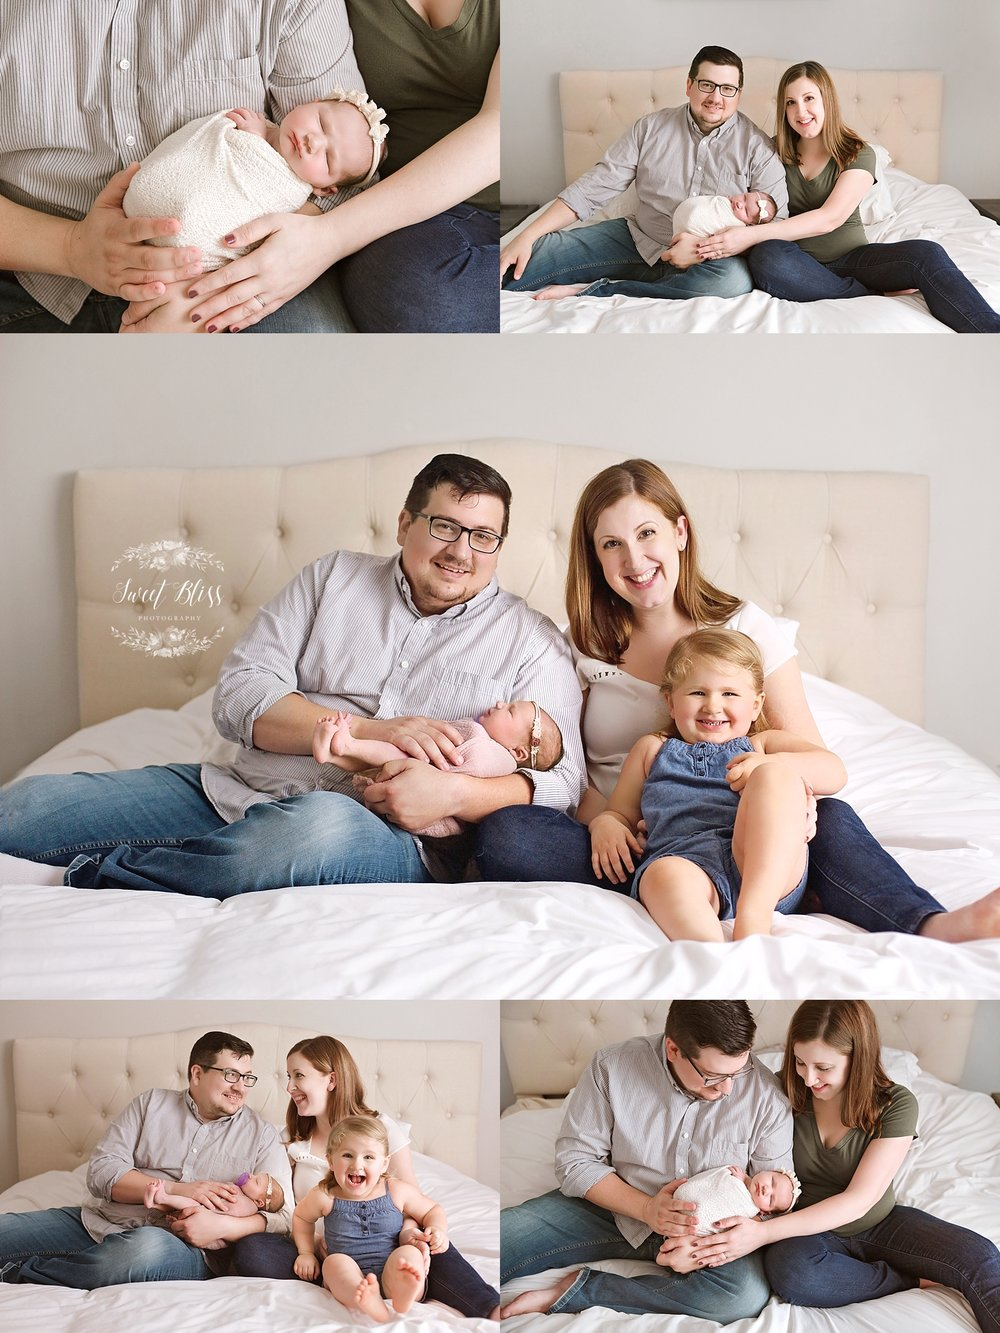 baltimorenewbornphotographer_Sweetblissphoto_familypose_momanddad2.jpg